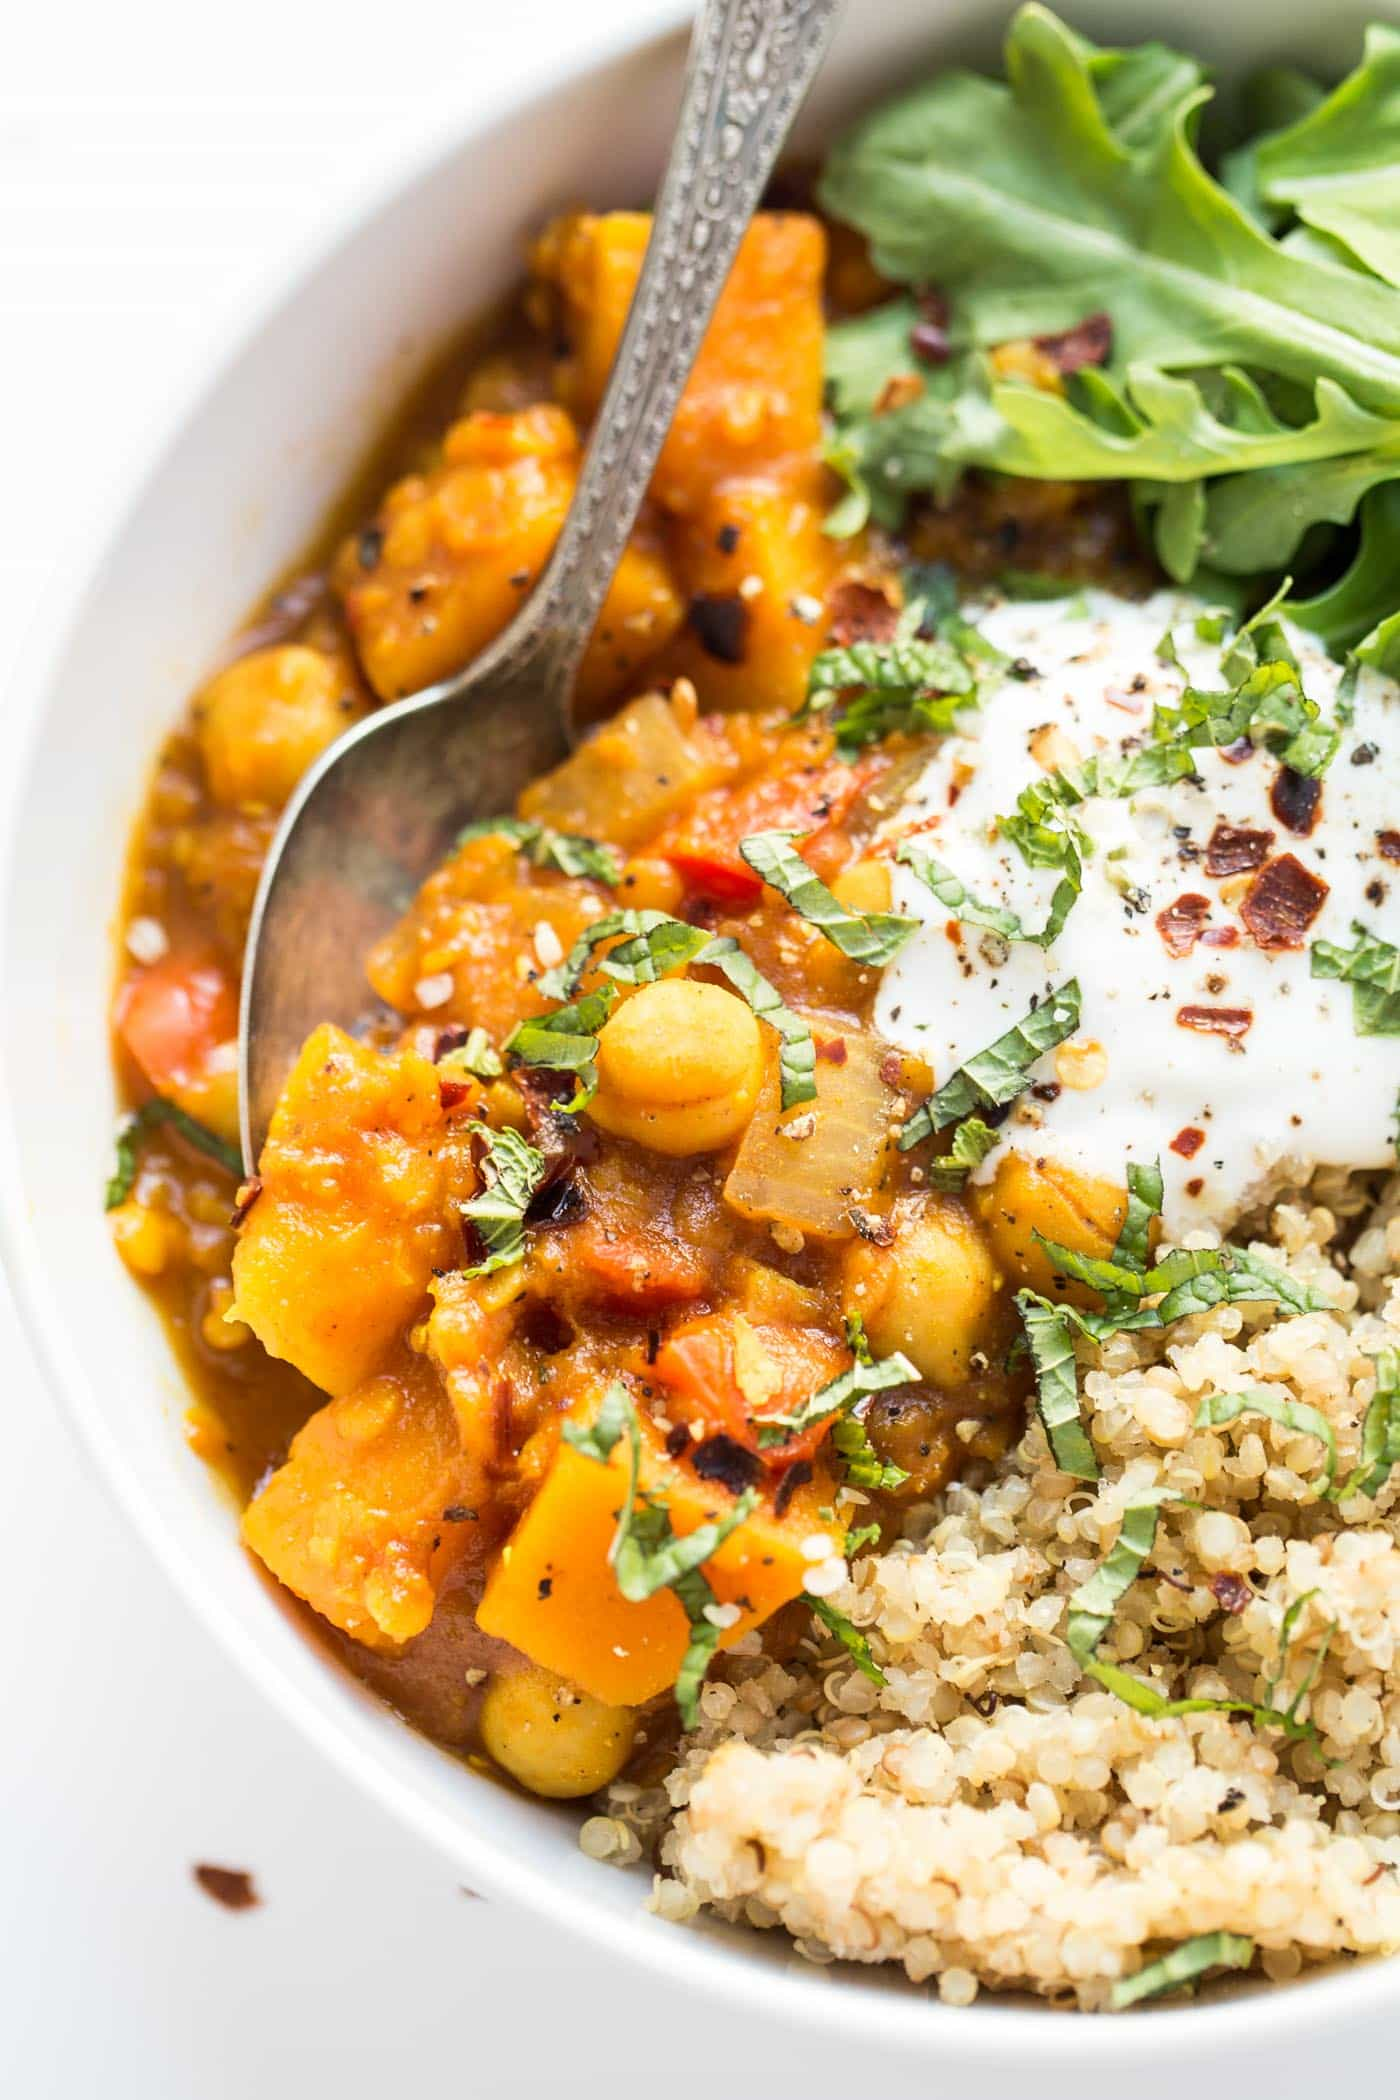 Slow Cooker Moroccan Chickpea Stew from simplyquinoa.com on foodiecrush.com